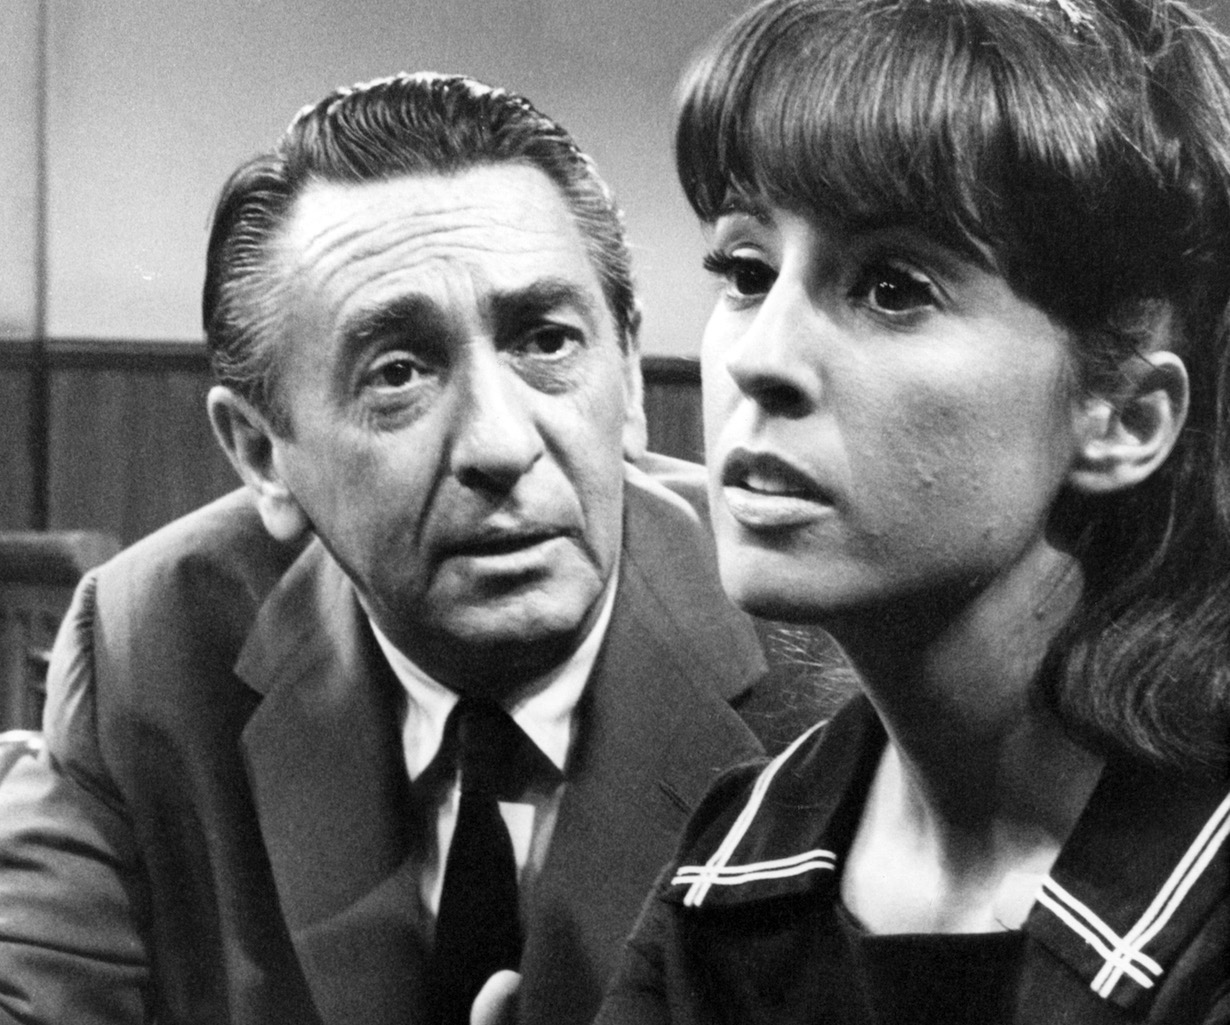 DAYS OF OUR LIVES, Macdonald Carey, Denise Alexander, tom susan